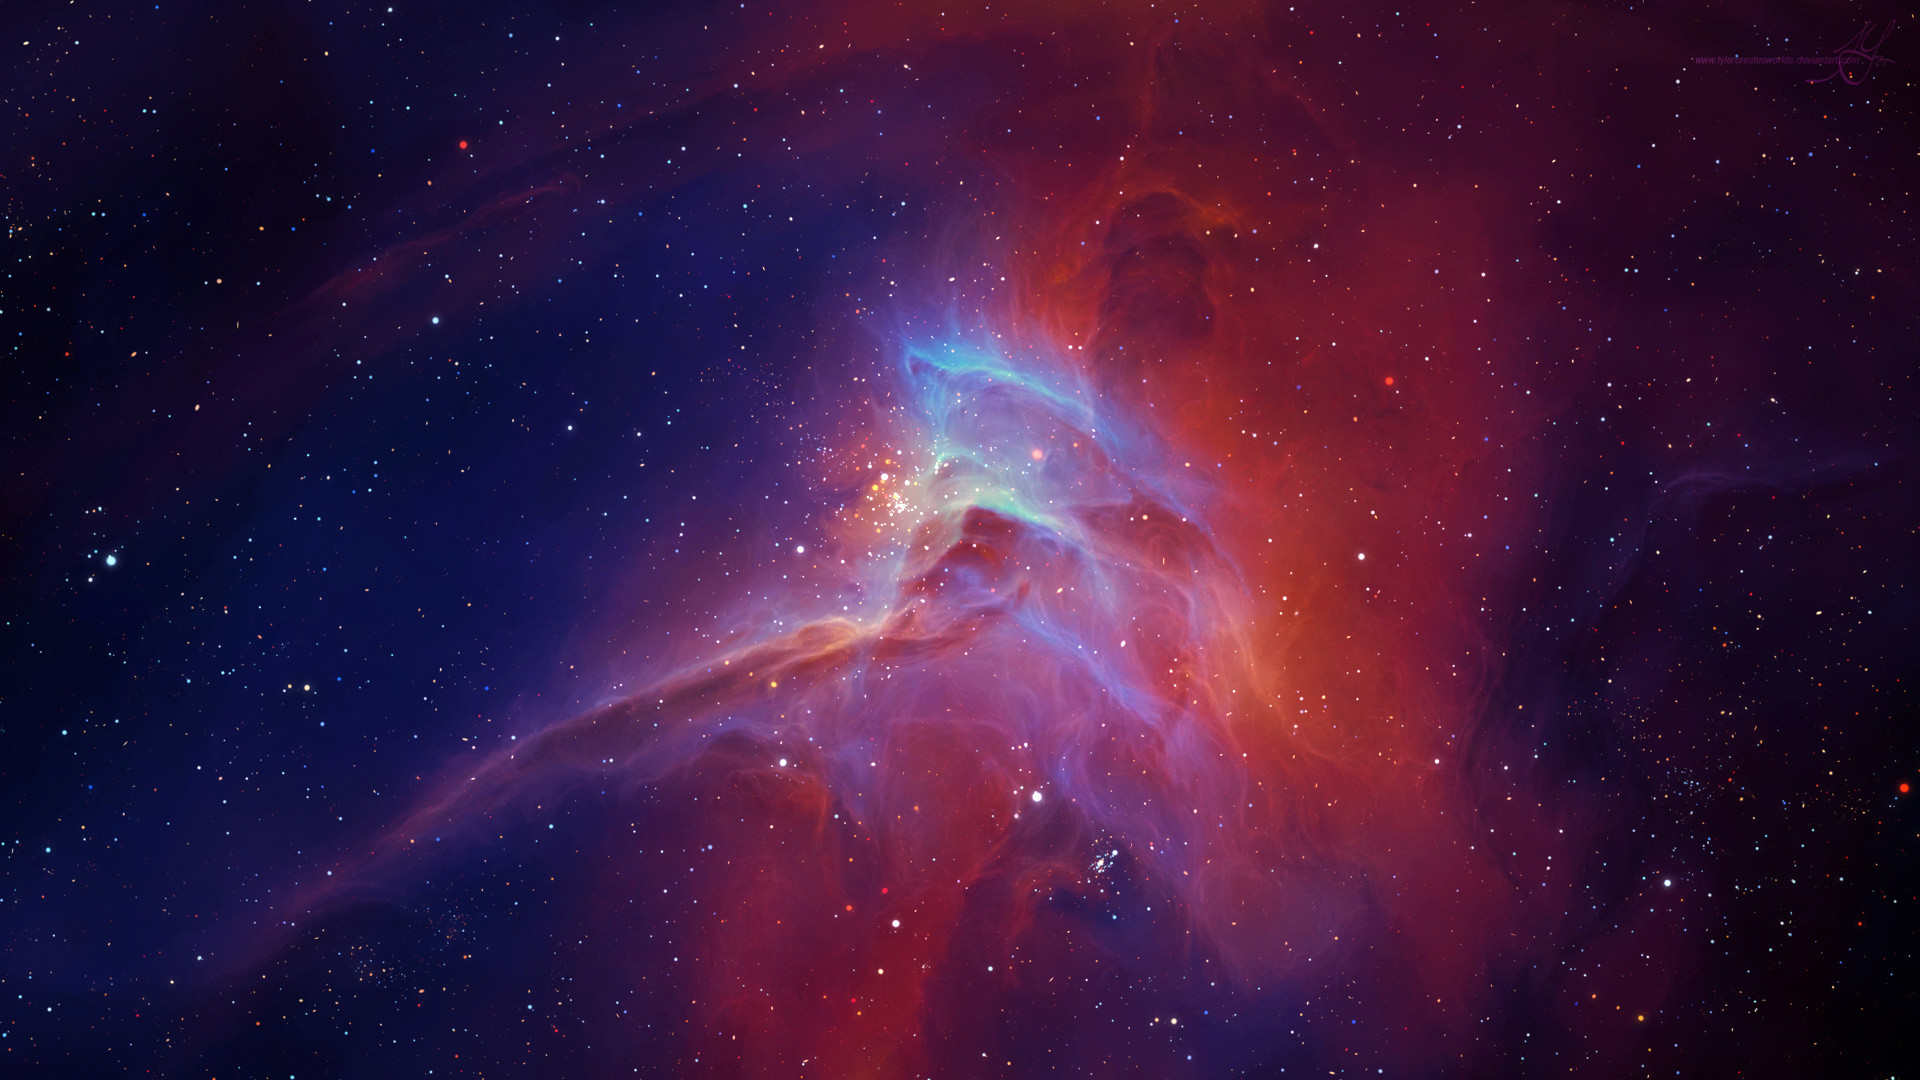 Space Wallpaper 1366x768 77 Pictures